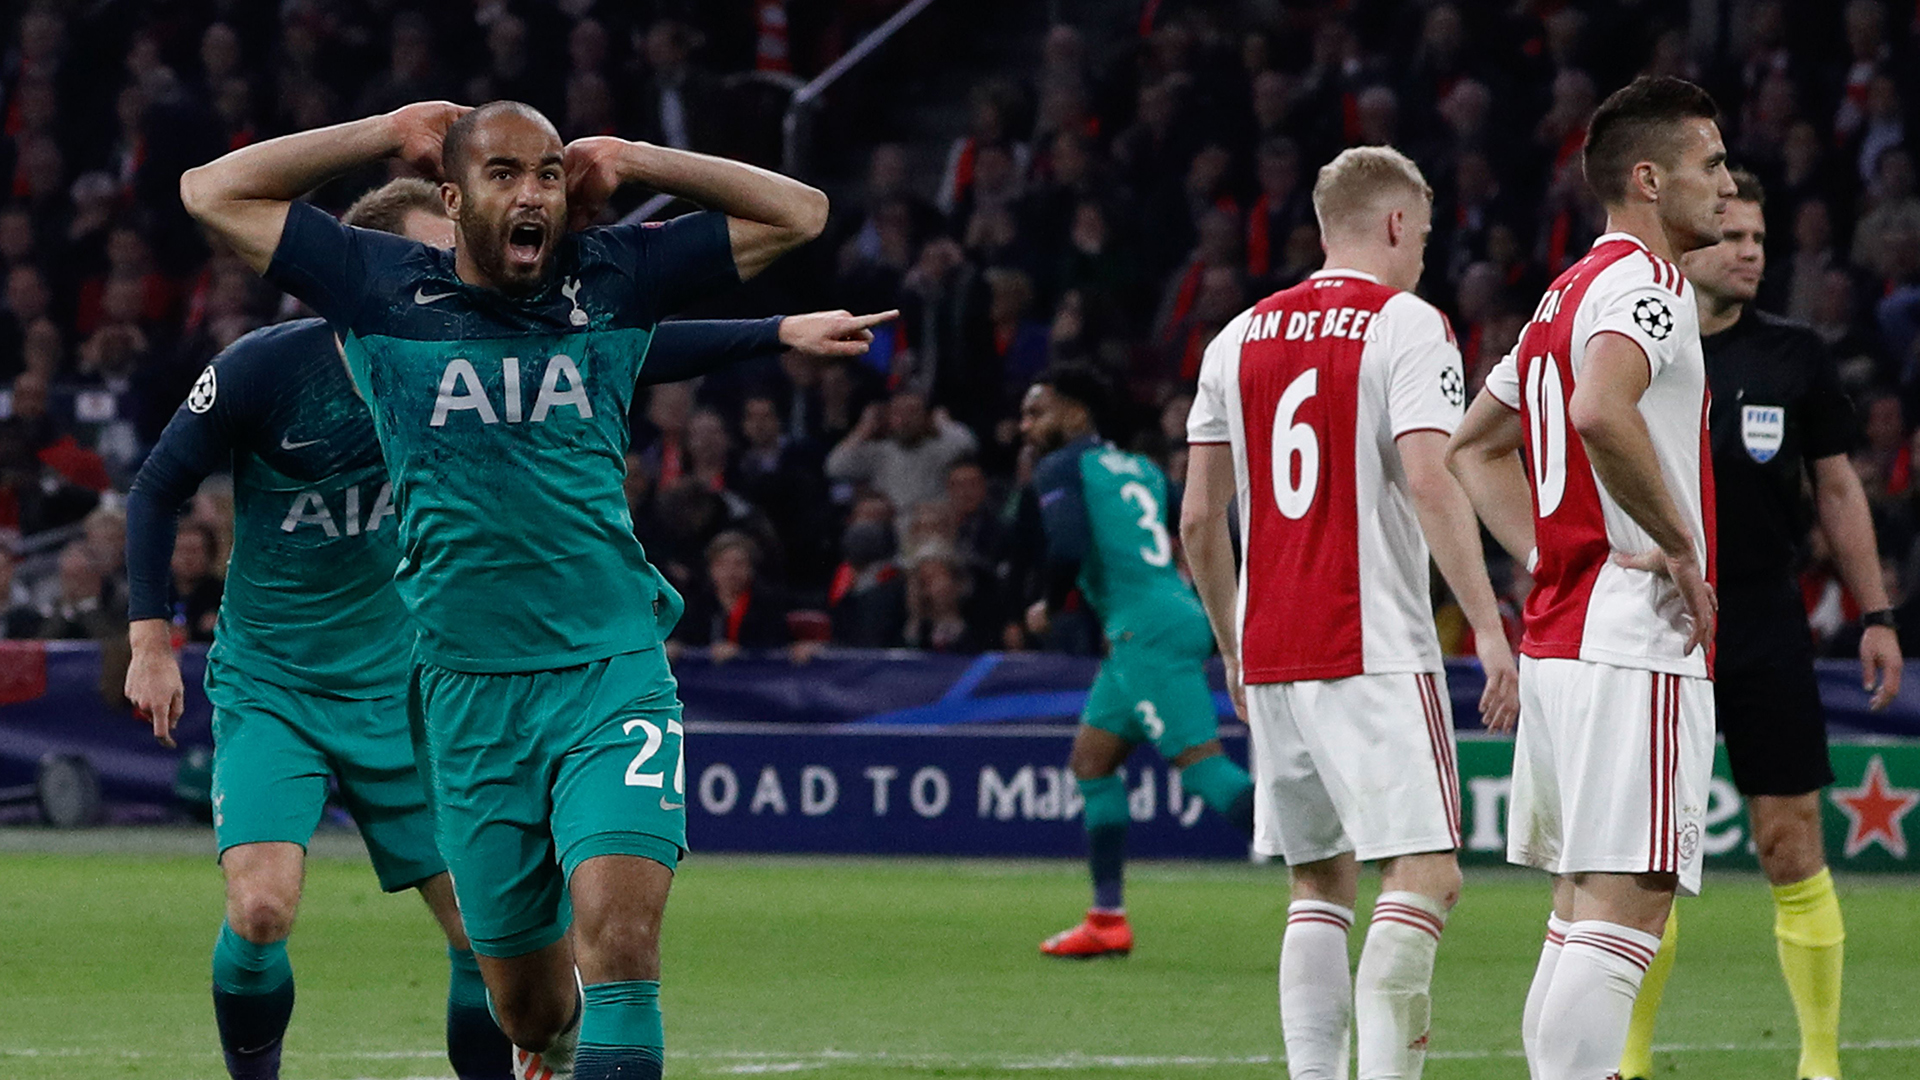 Beers, tears & disbelief: Spurs destroy Ajax's 'destiny' in Champions League classic